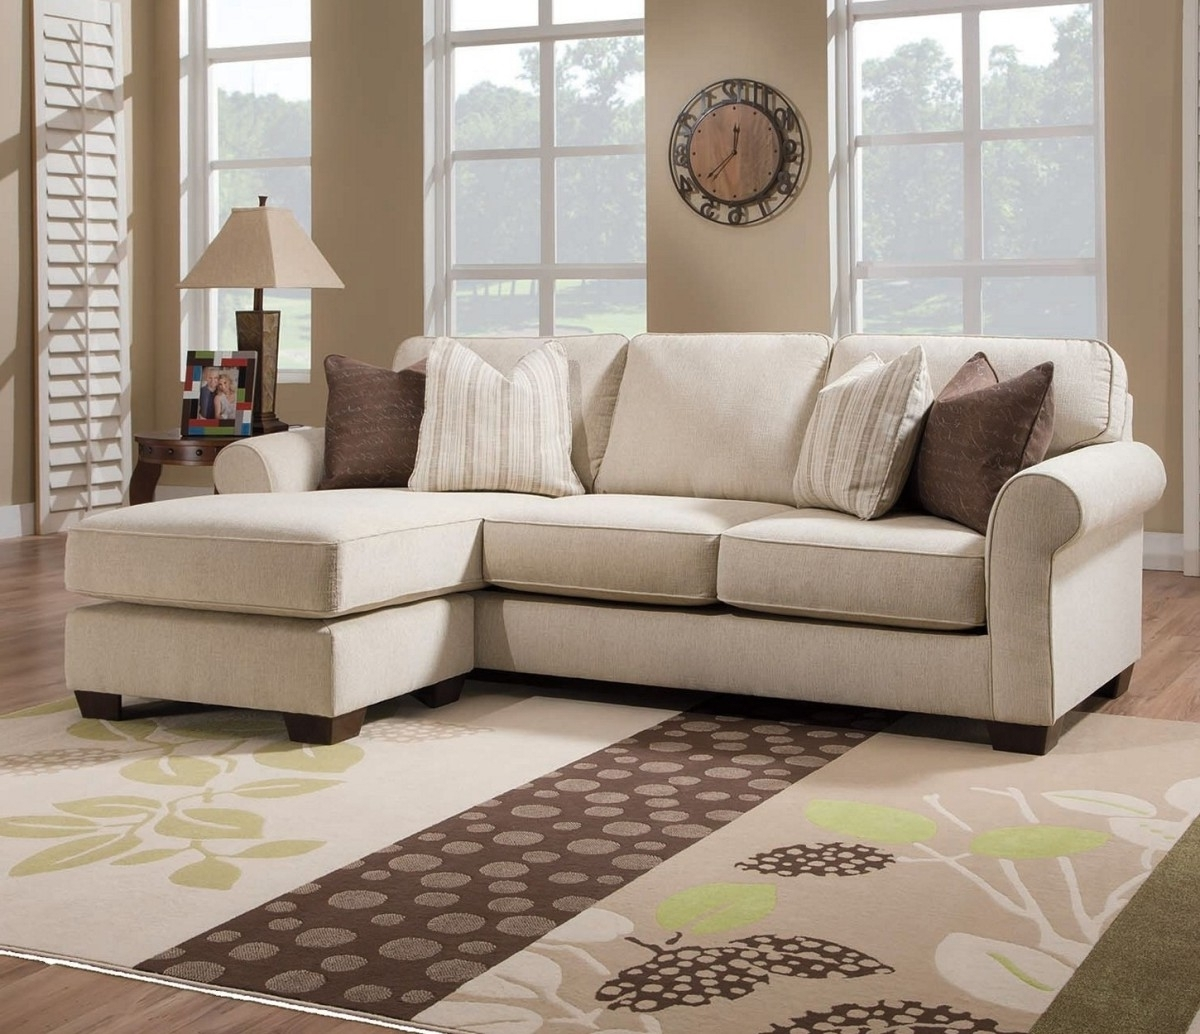 Most Recent Sams Club Sectional Sofas With Regard To Sofa : High Back Sofa Inexpensive Sectional Sofas For Small Spaces (View 11 of 20)